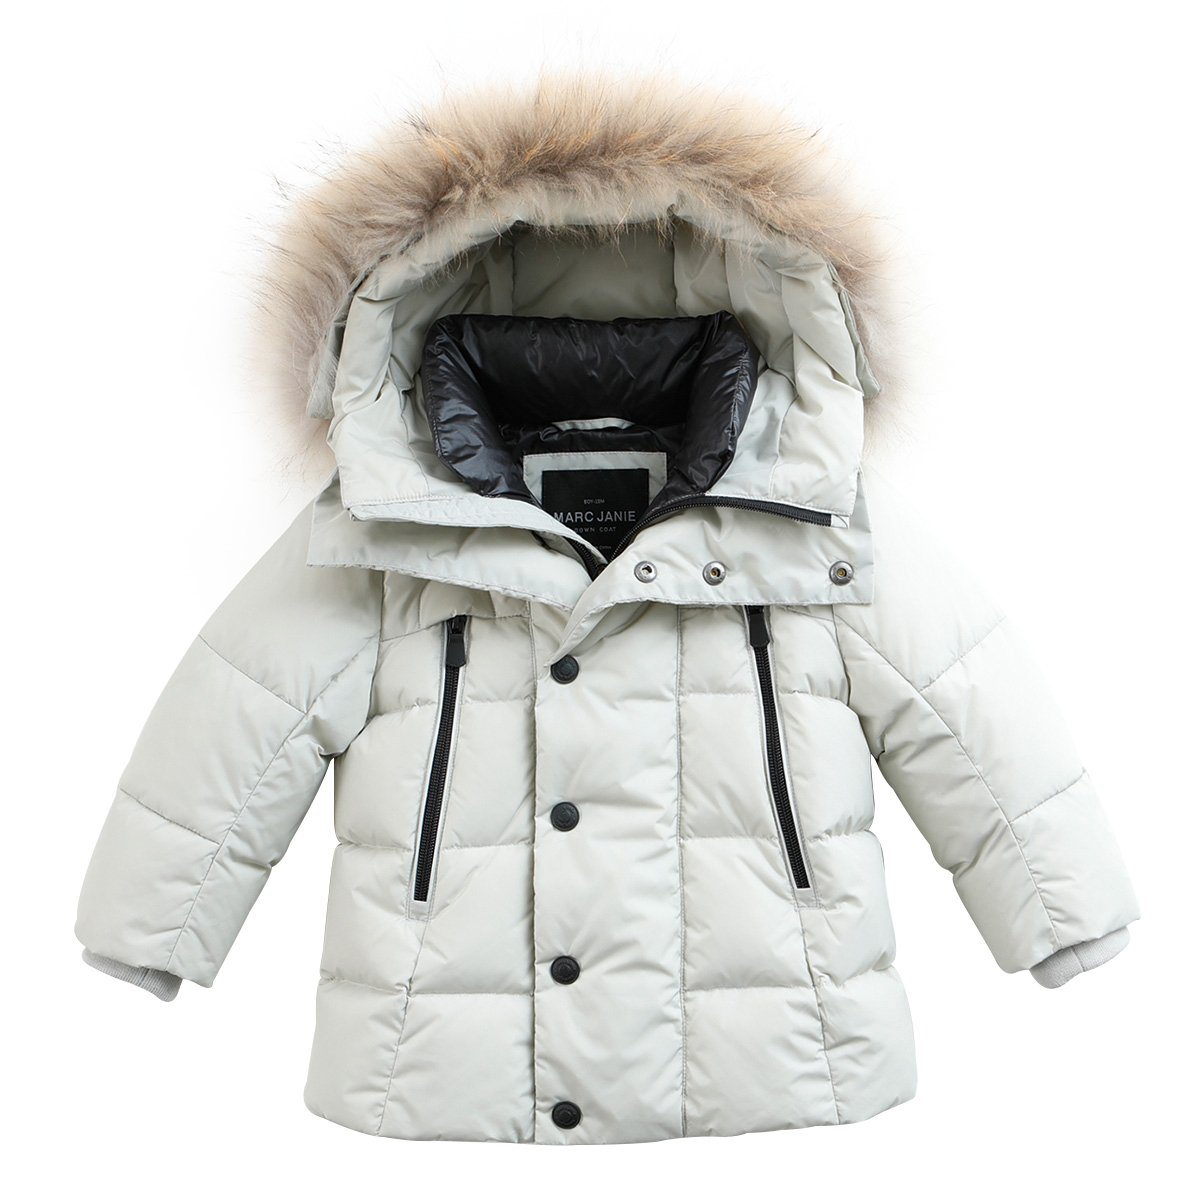 marc janie Baby Boys Kids' Lightweight Down Jacket With Raccoon Fur Collar Hood Puffer Winter Coat Light Gray White 5T